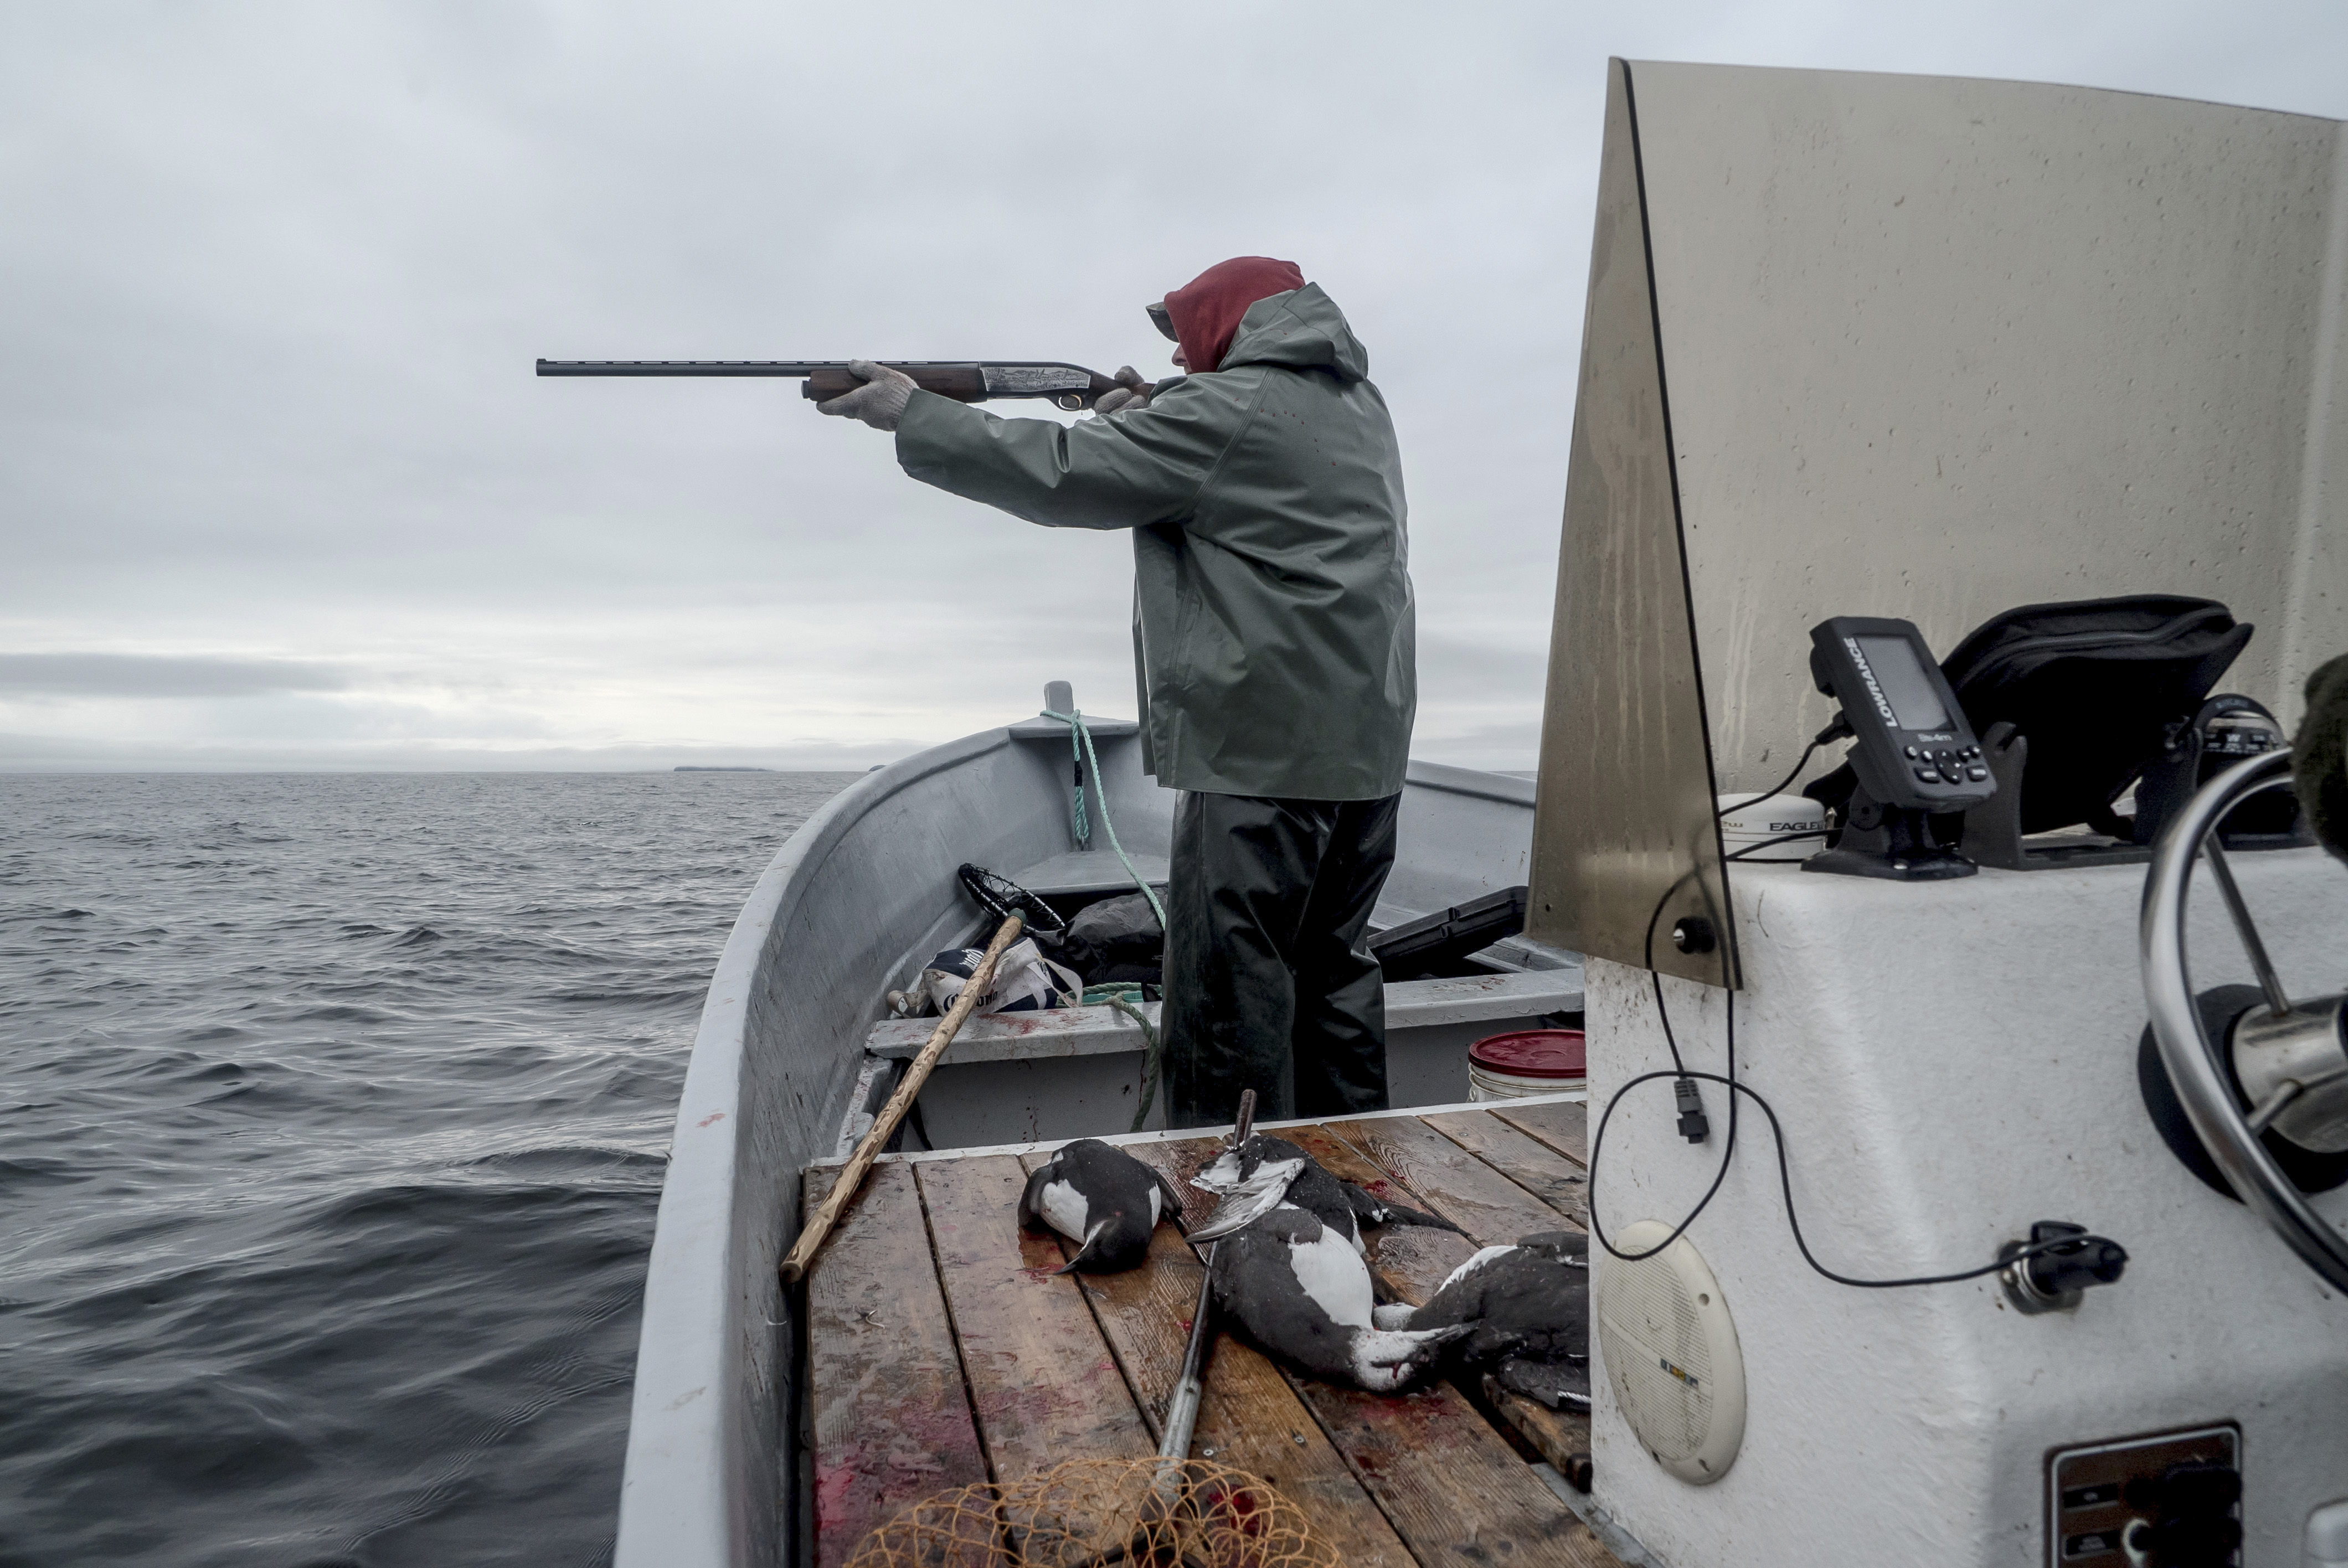 Scott Butler aims at a guillemot from the deck of his boat.